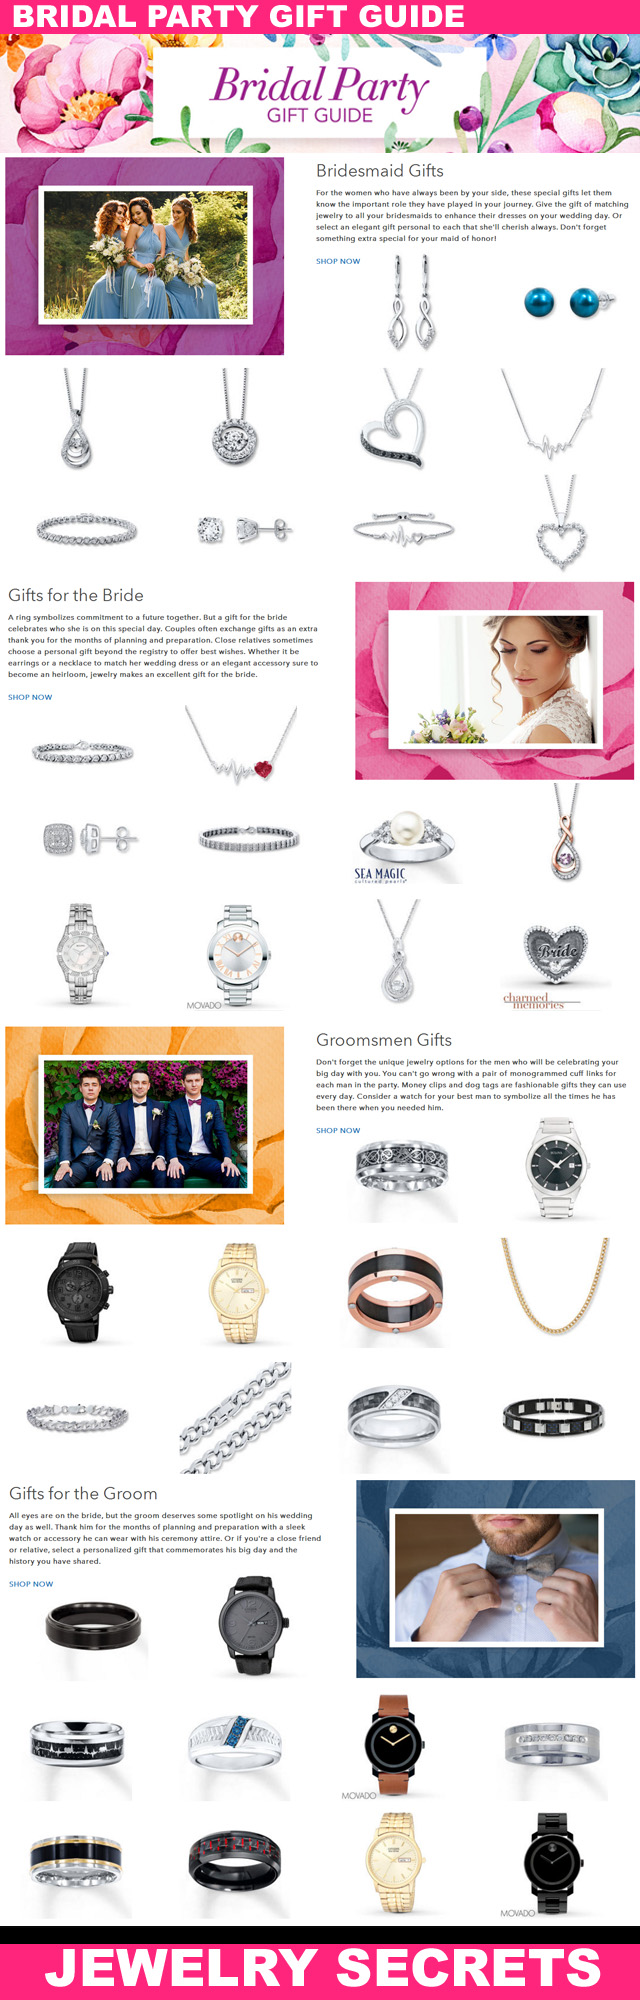 Bridal Party Jewelry Gift Guide